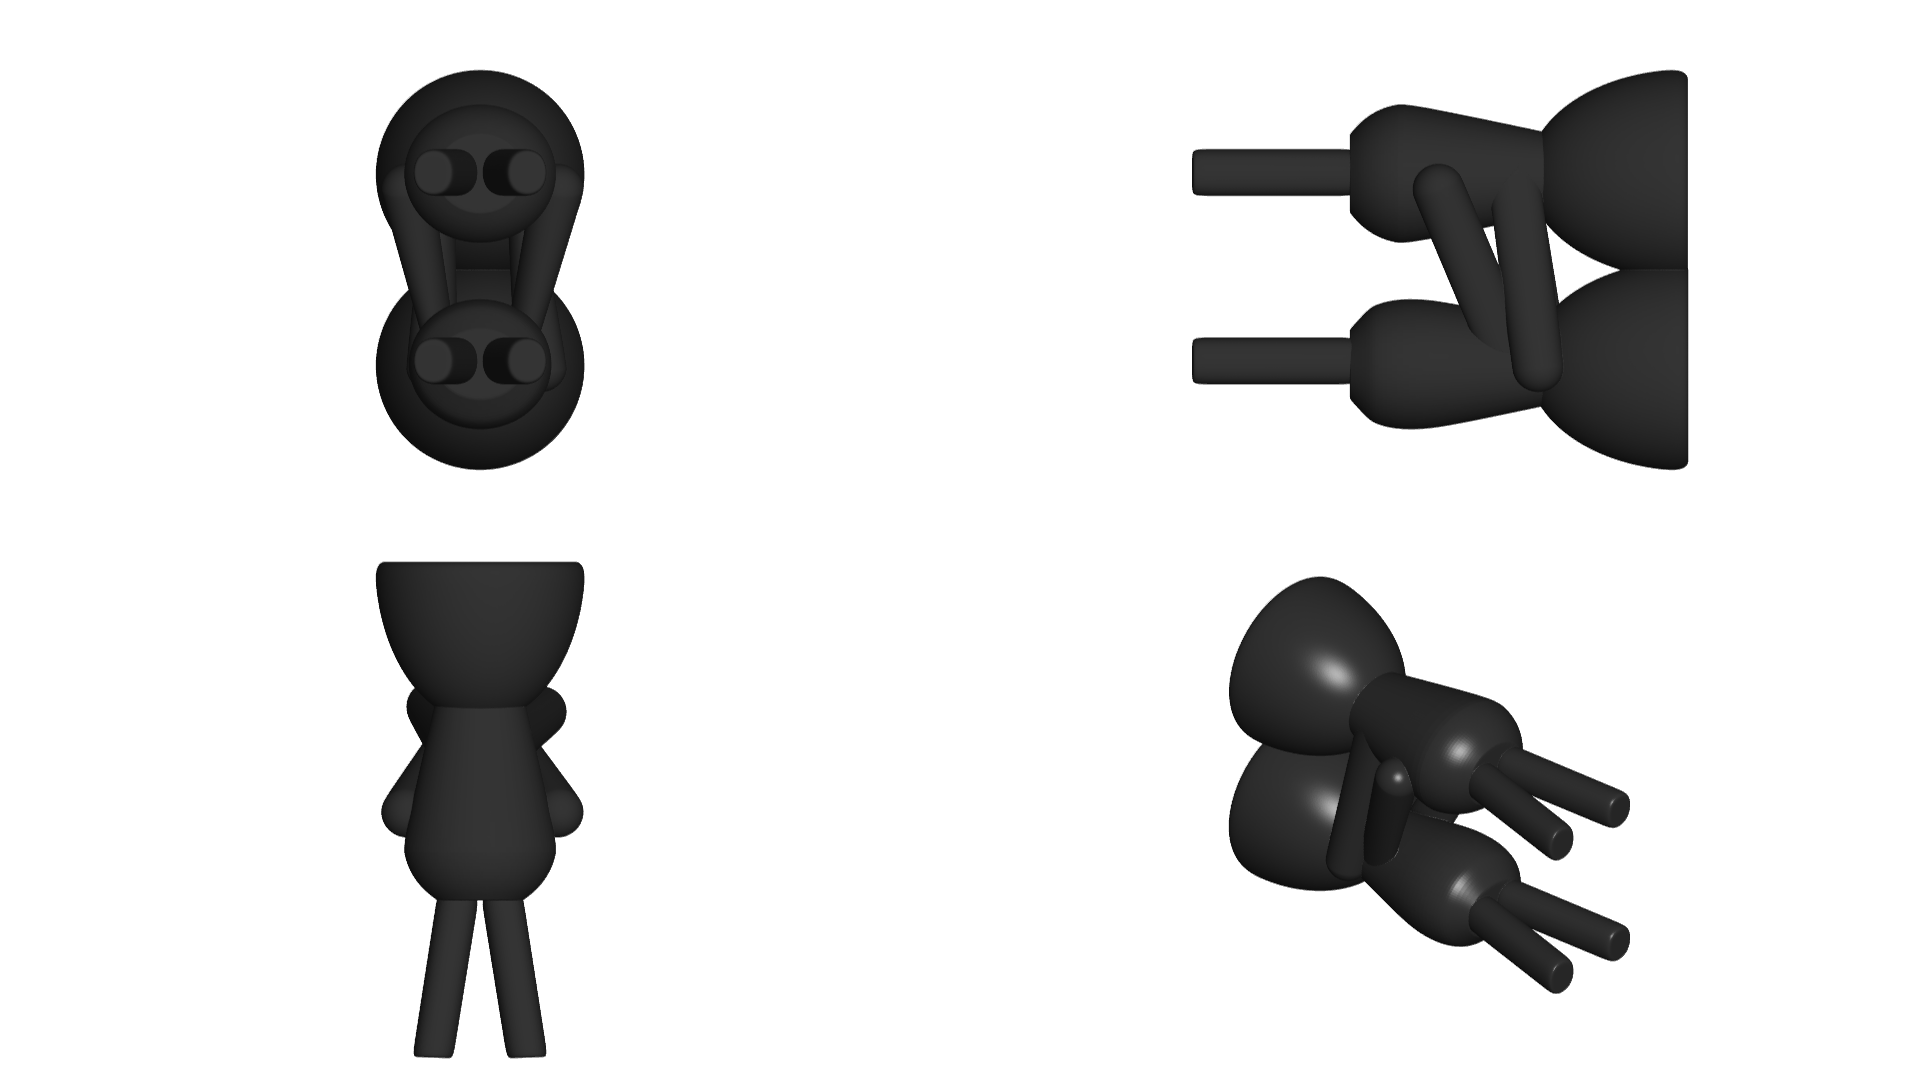 Enamorados_N7_Negro_2.png Download free STL file Florero Robert Enamorado - N° 7 VASE FLOWERPOT ROBERT IN LOVE • Design to 3D print, PRODUSTL56